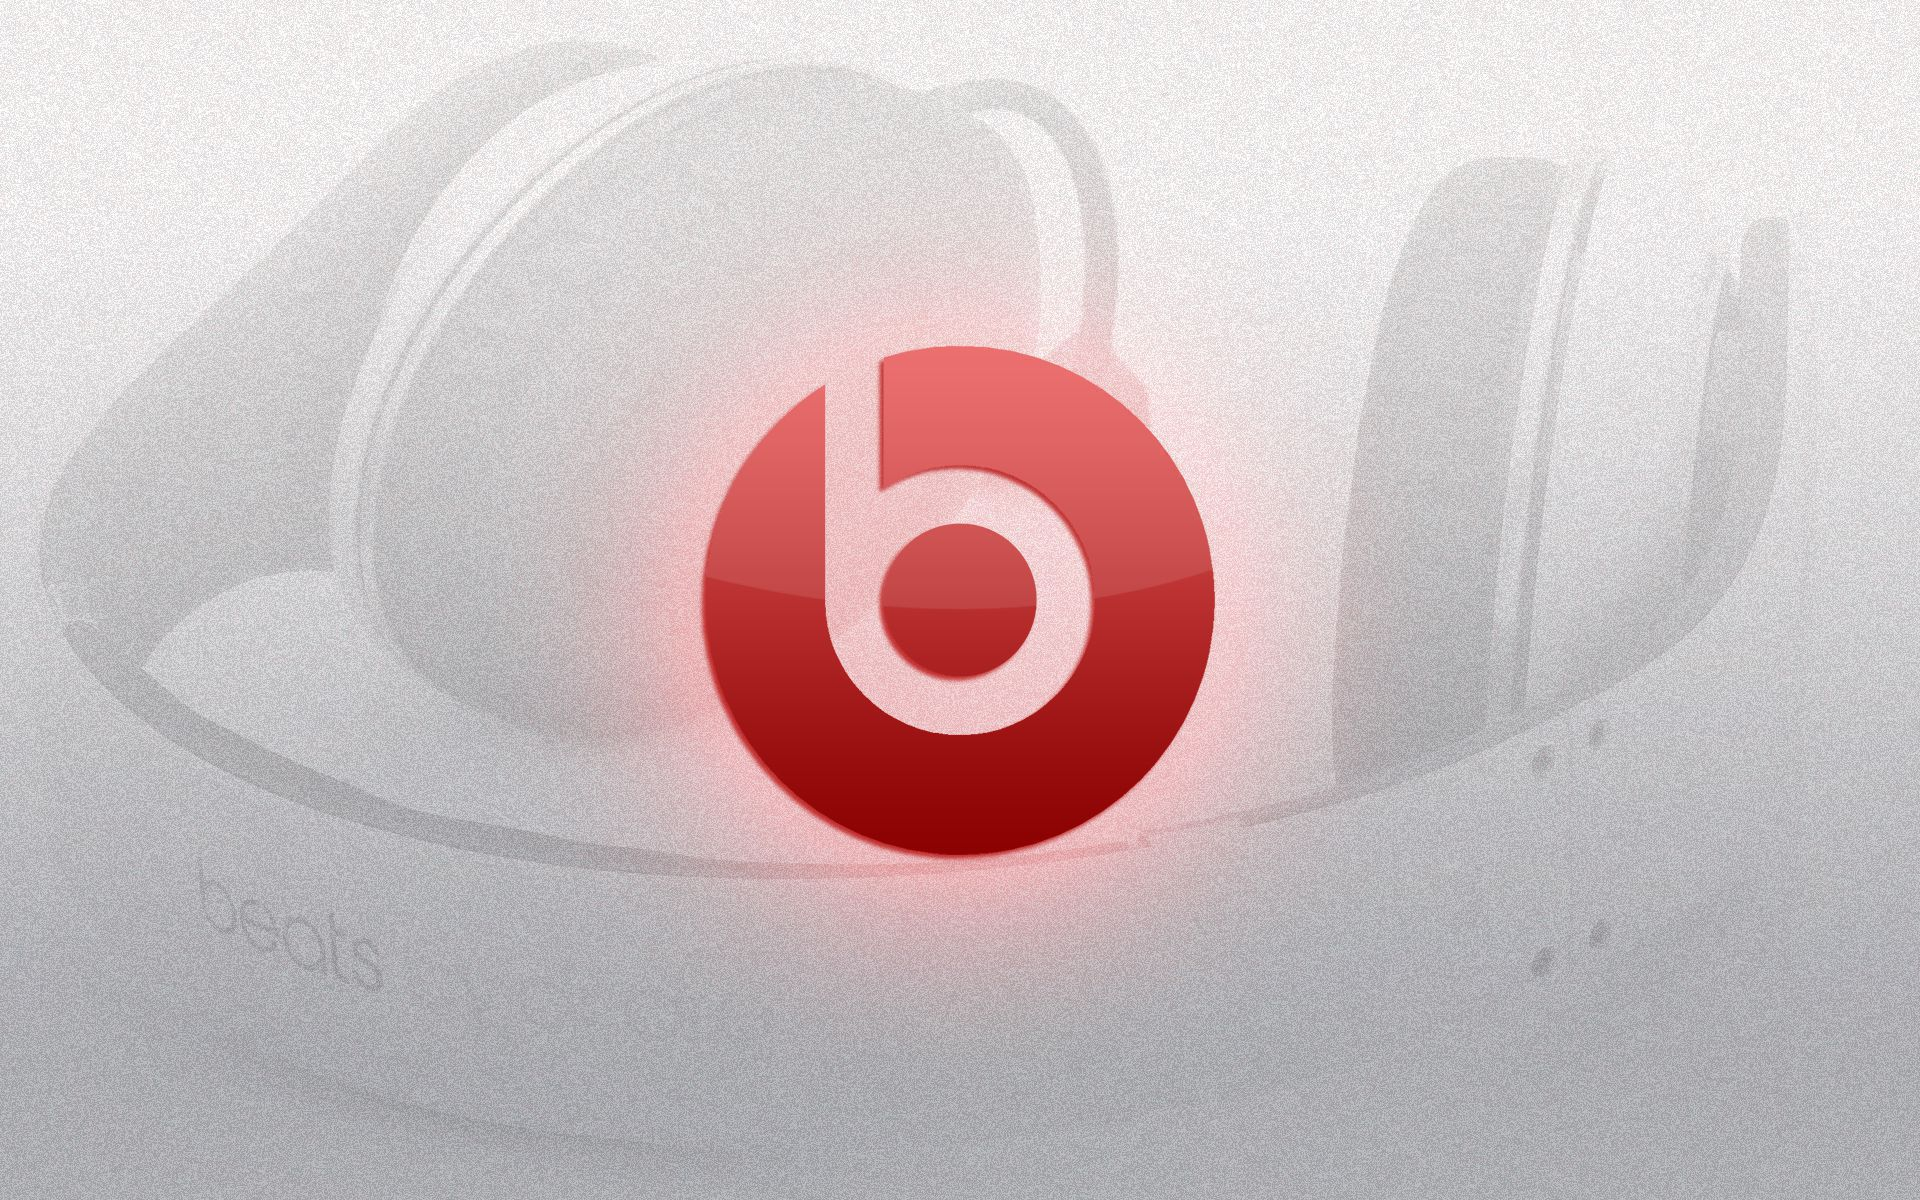 Beats By Dre Images